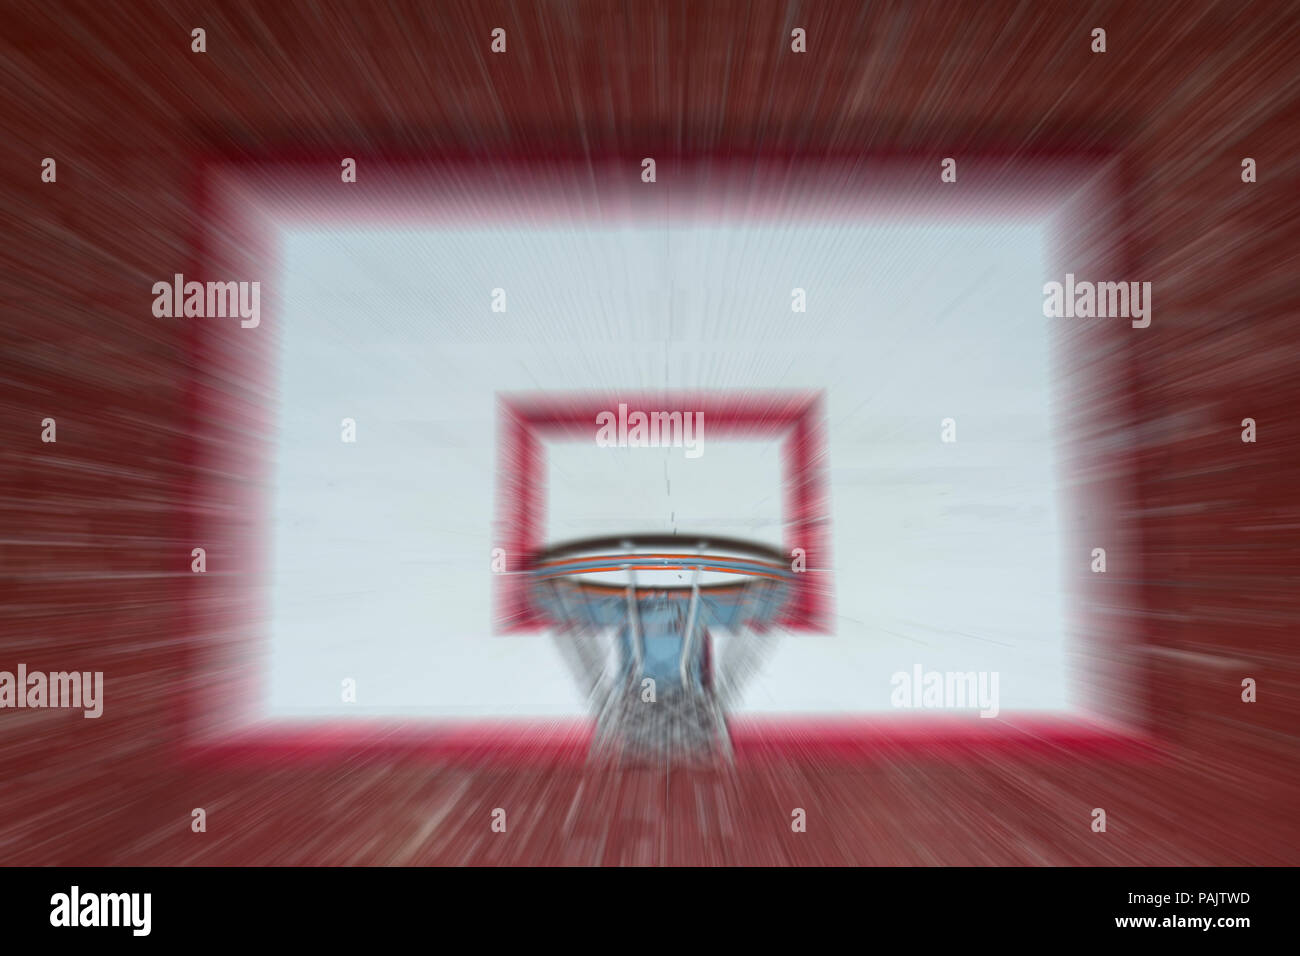 absract zoom in moving basketball game - Stock Image